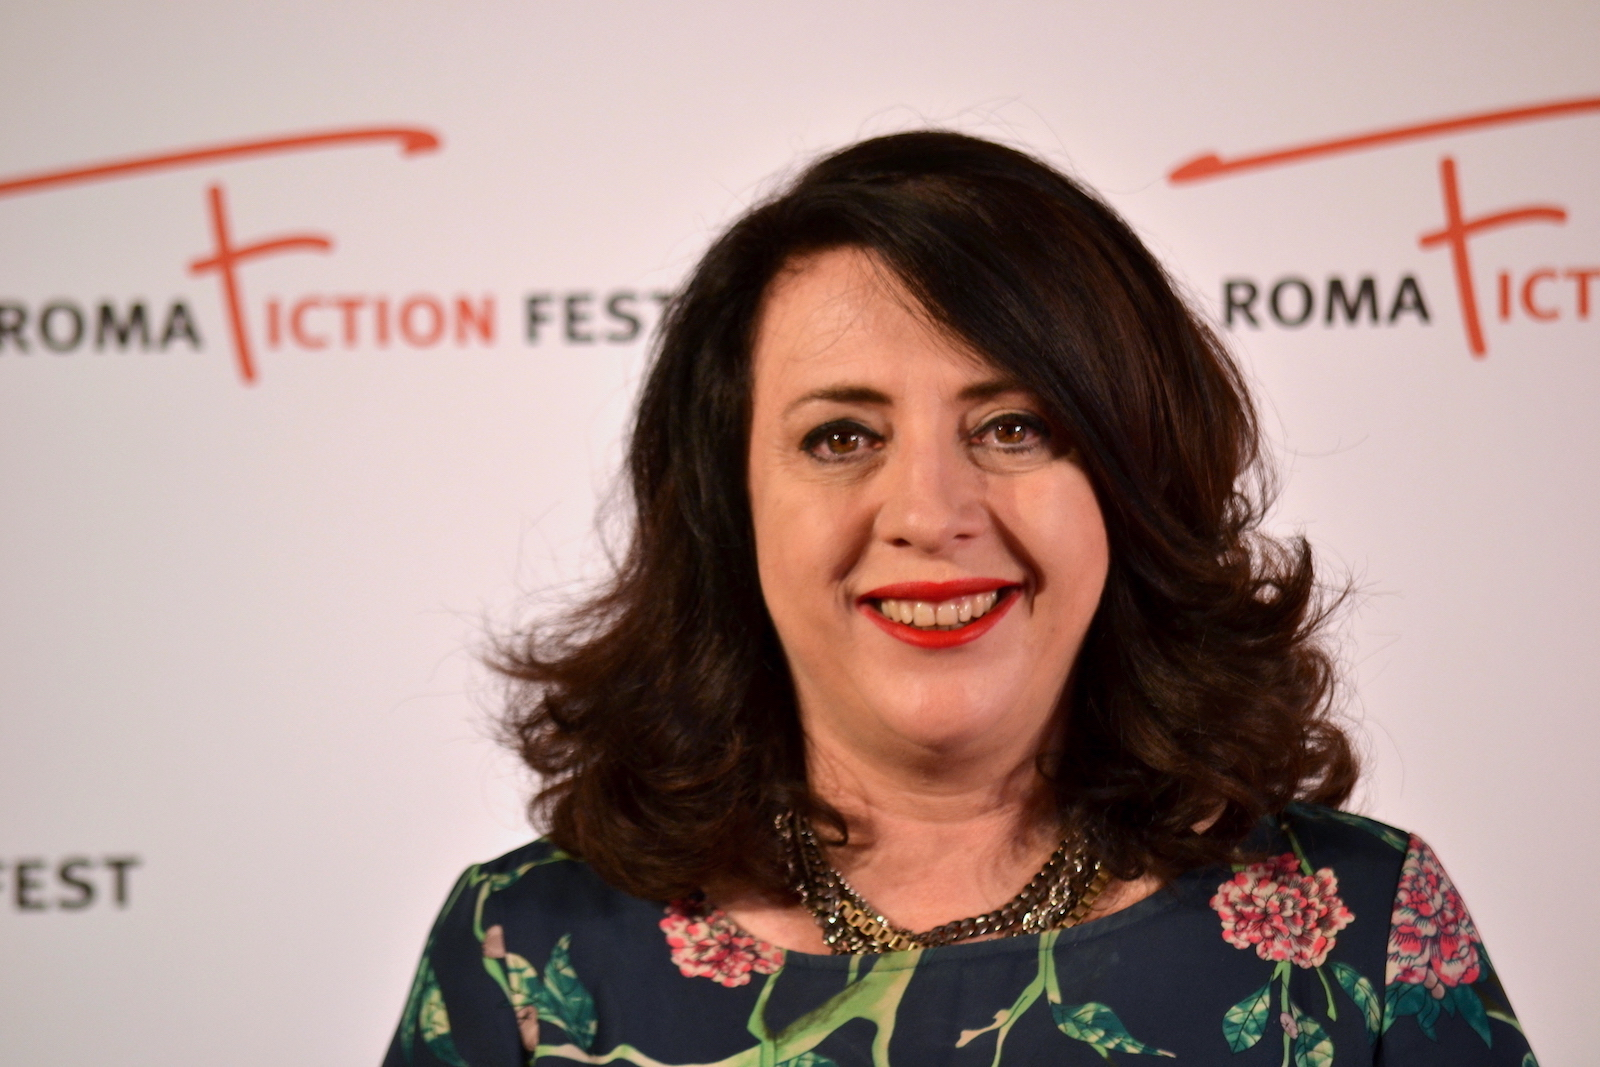 Roma Fiction Fest 2015: Louise Fox produttrice e sceneggiatrice di Glitch sorride al photocall